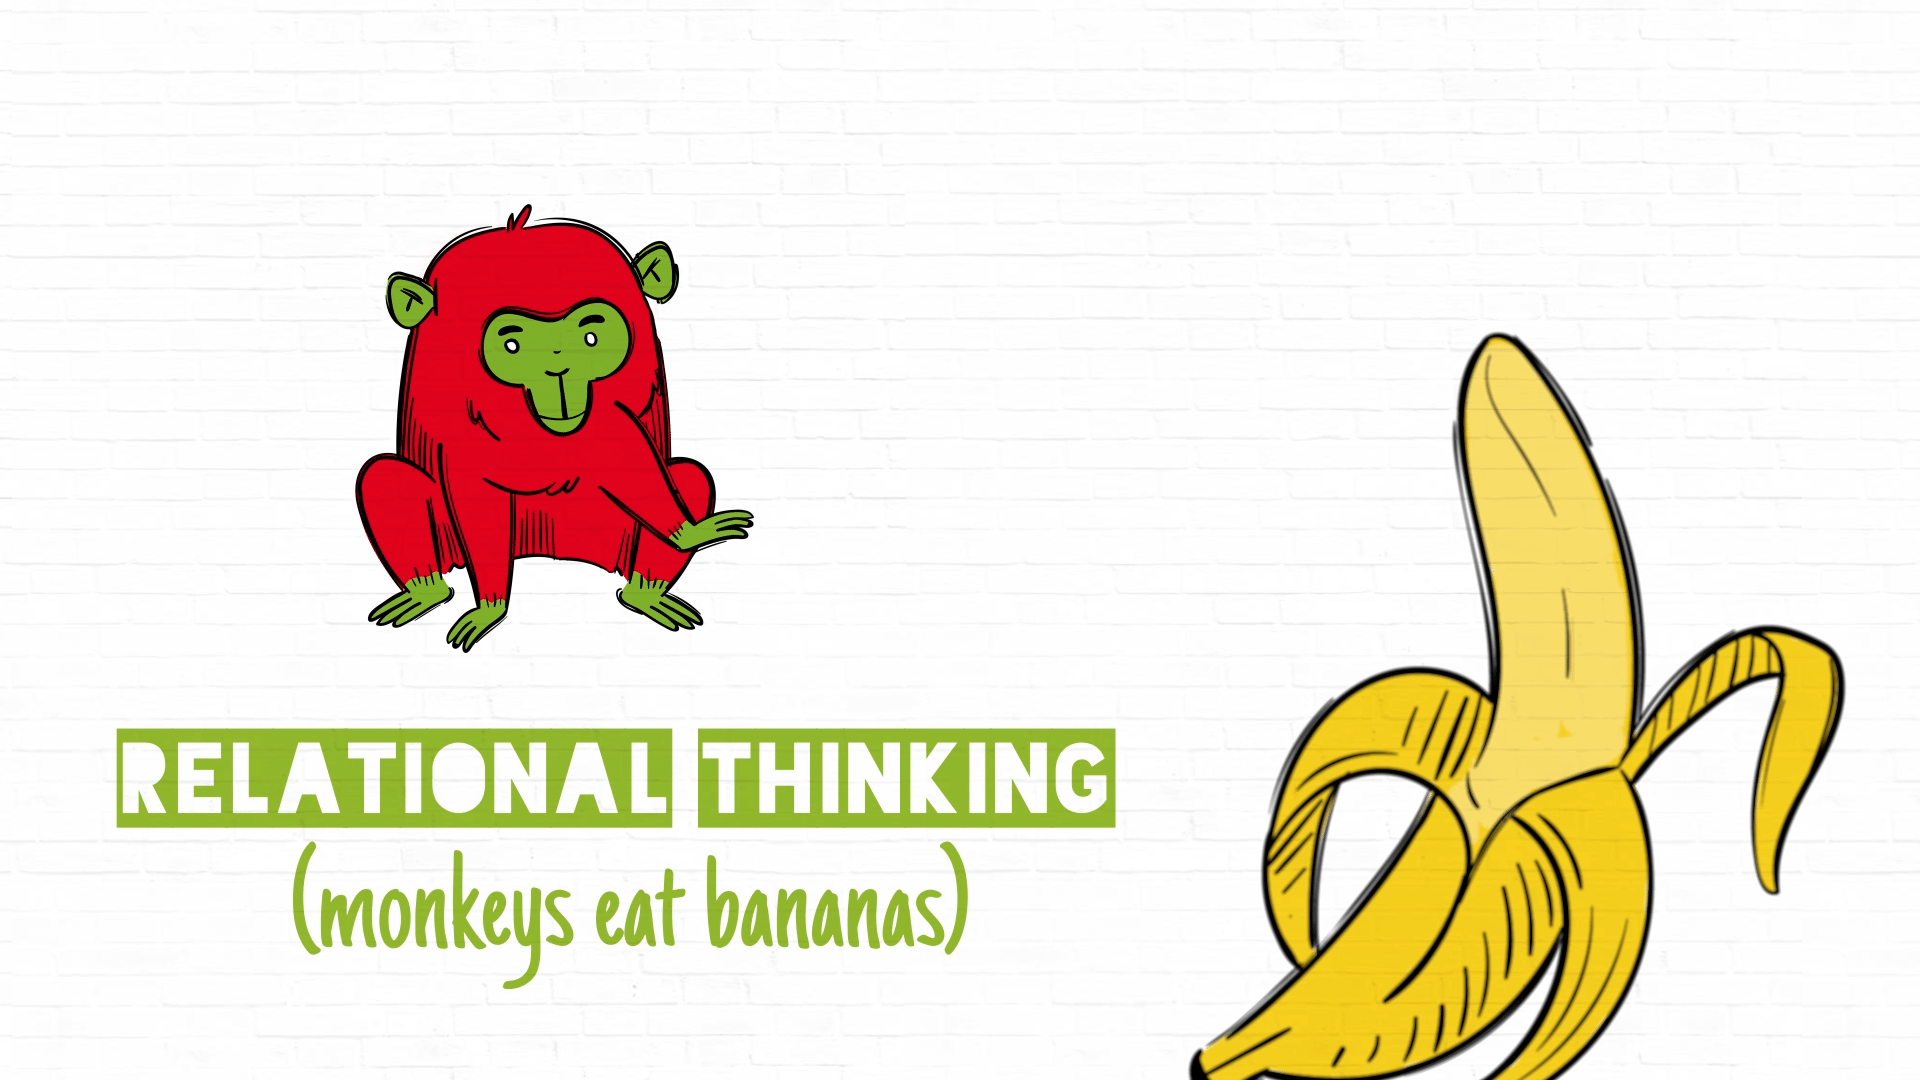 animated explainer video for research | relational thinking - monkeys eat bananas